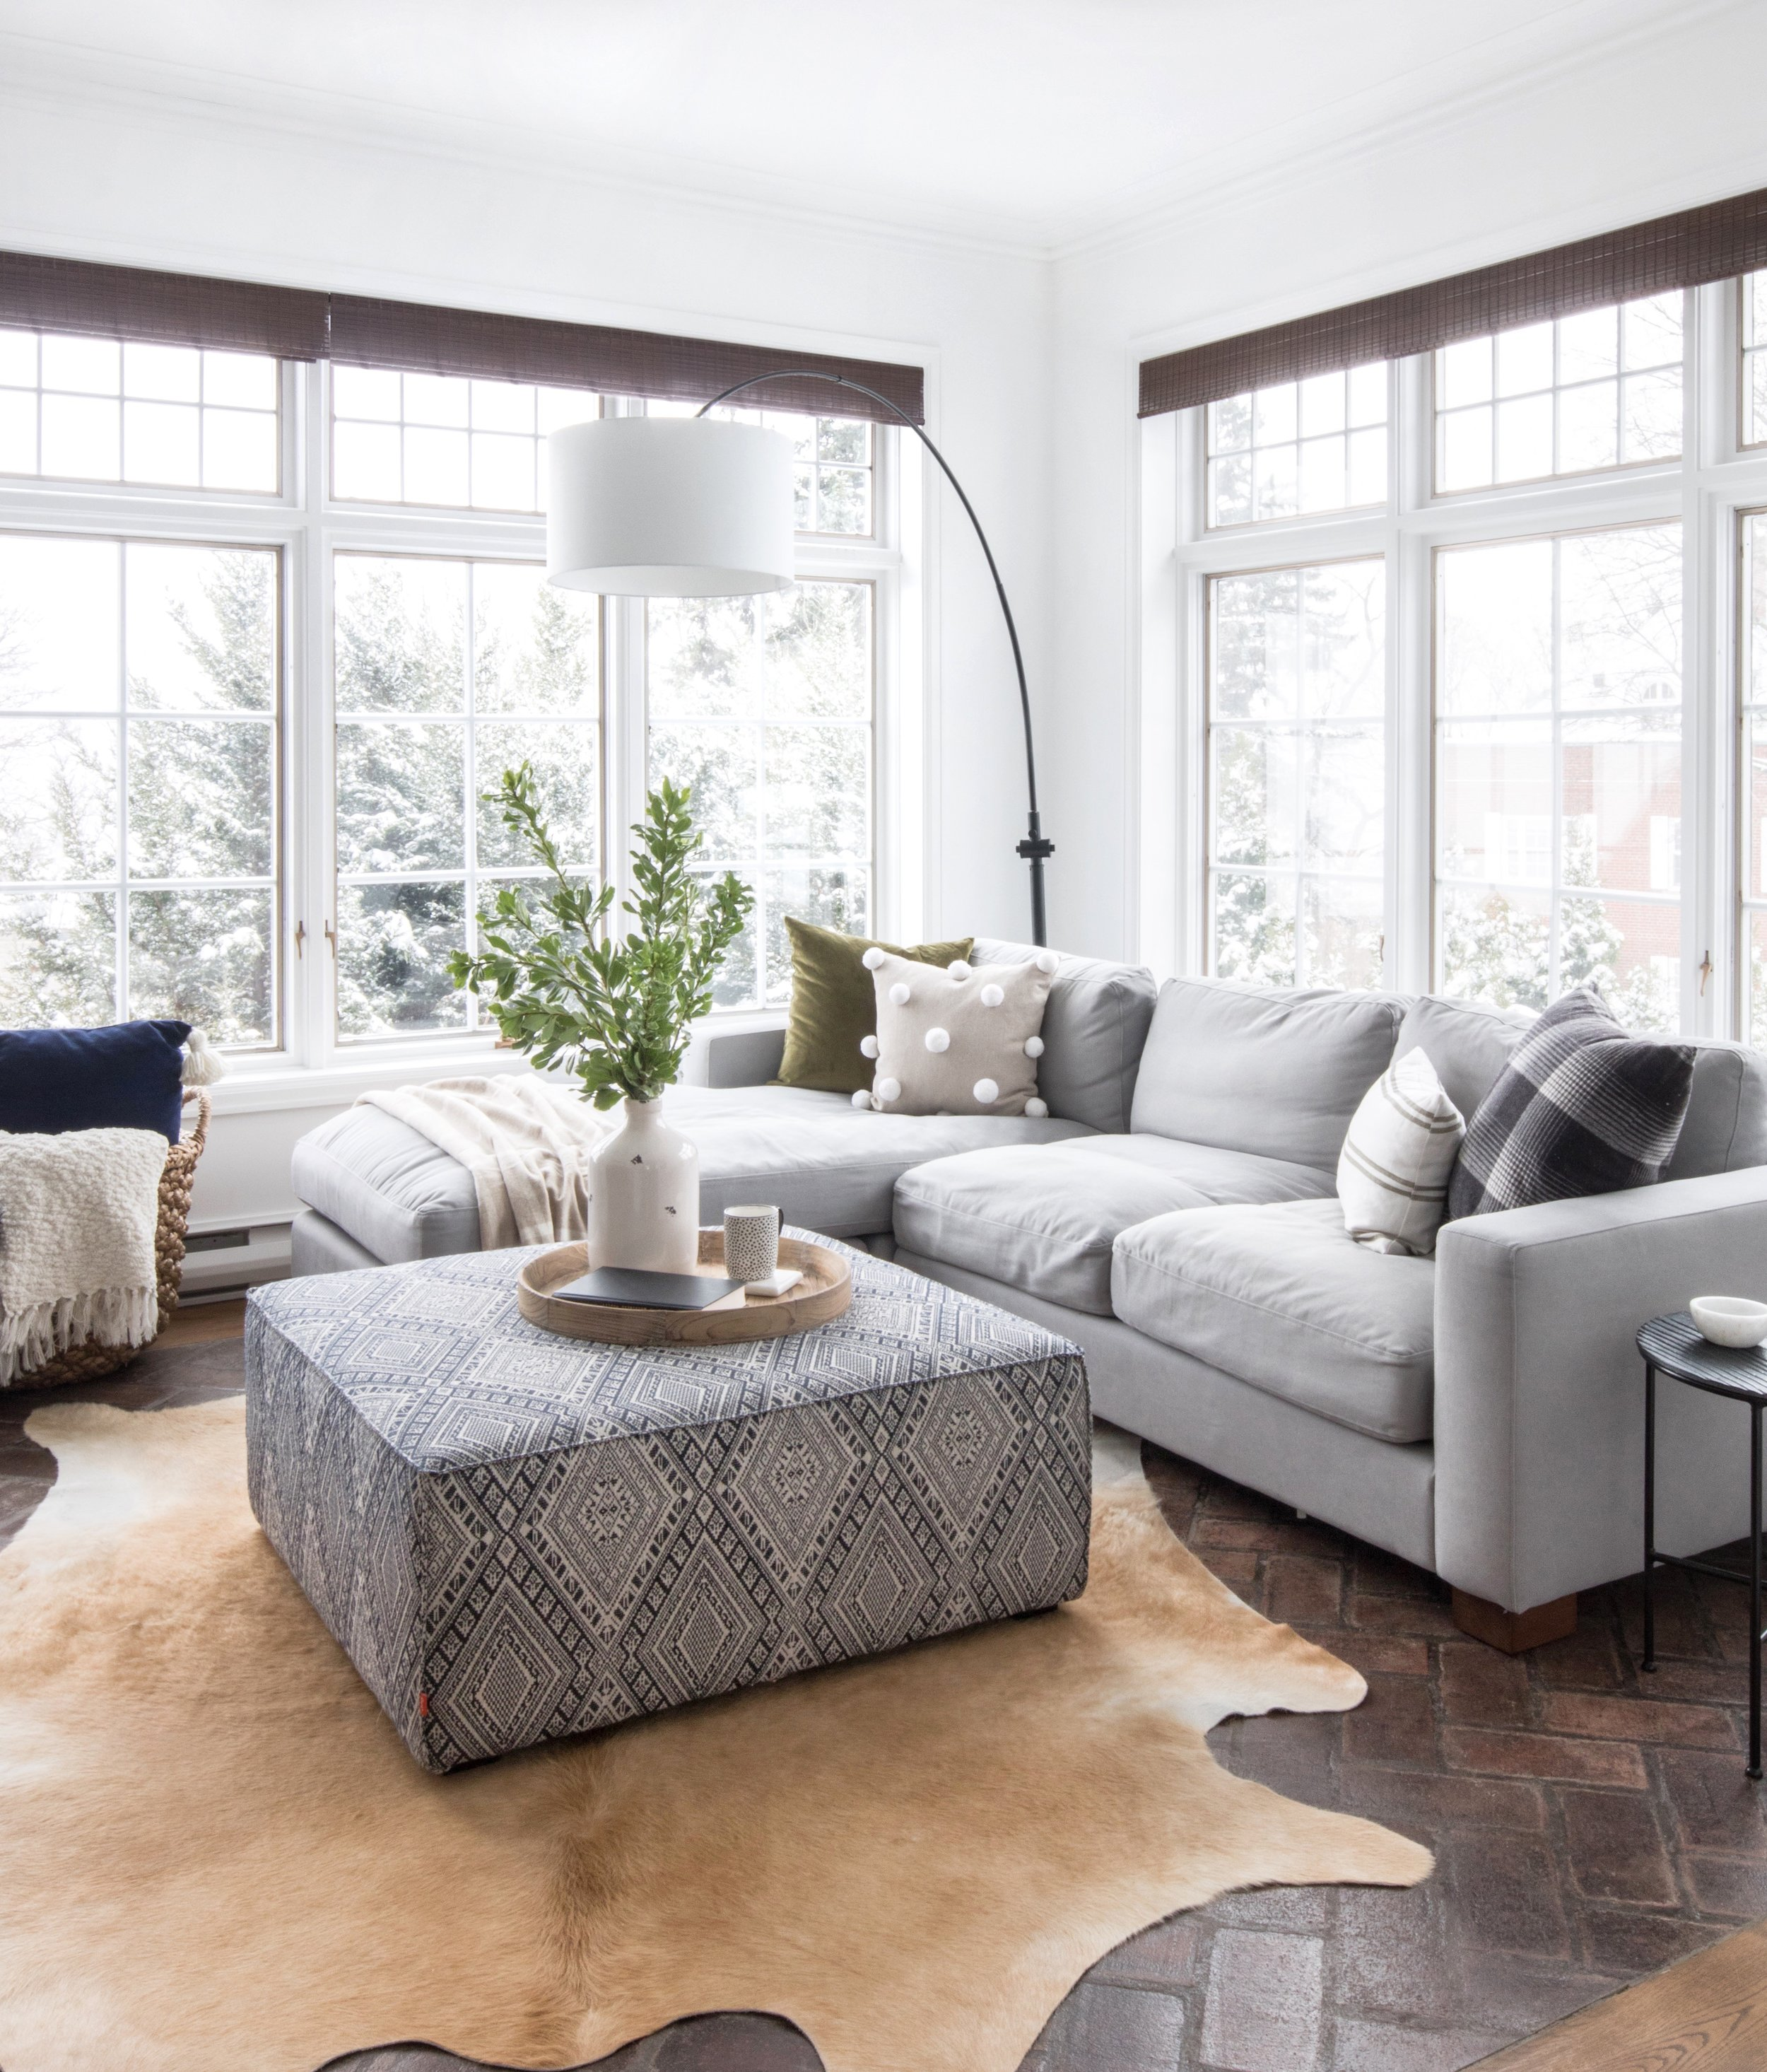 How-To Bring Canadian Charm to your Home